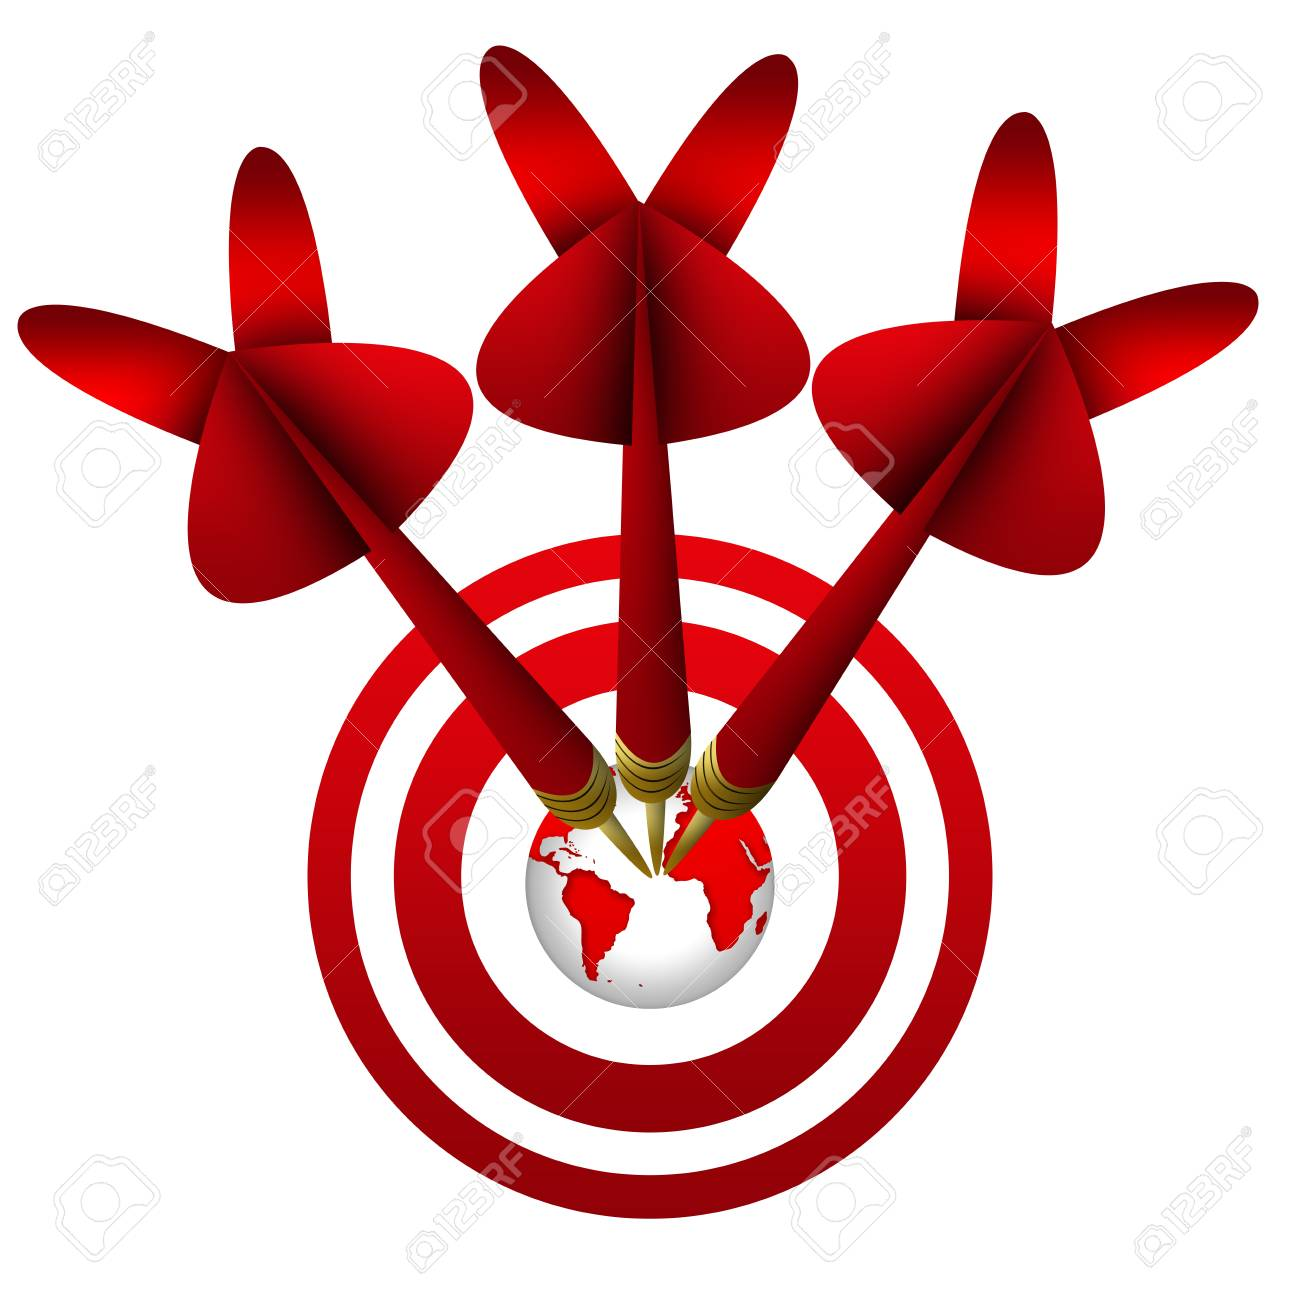 Business Concept, The Darts Hitting a Target Isolated on White Background Stock Photo - 17455058